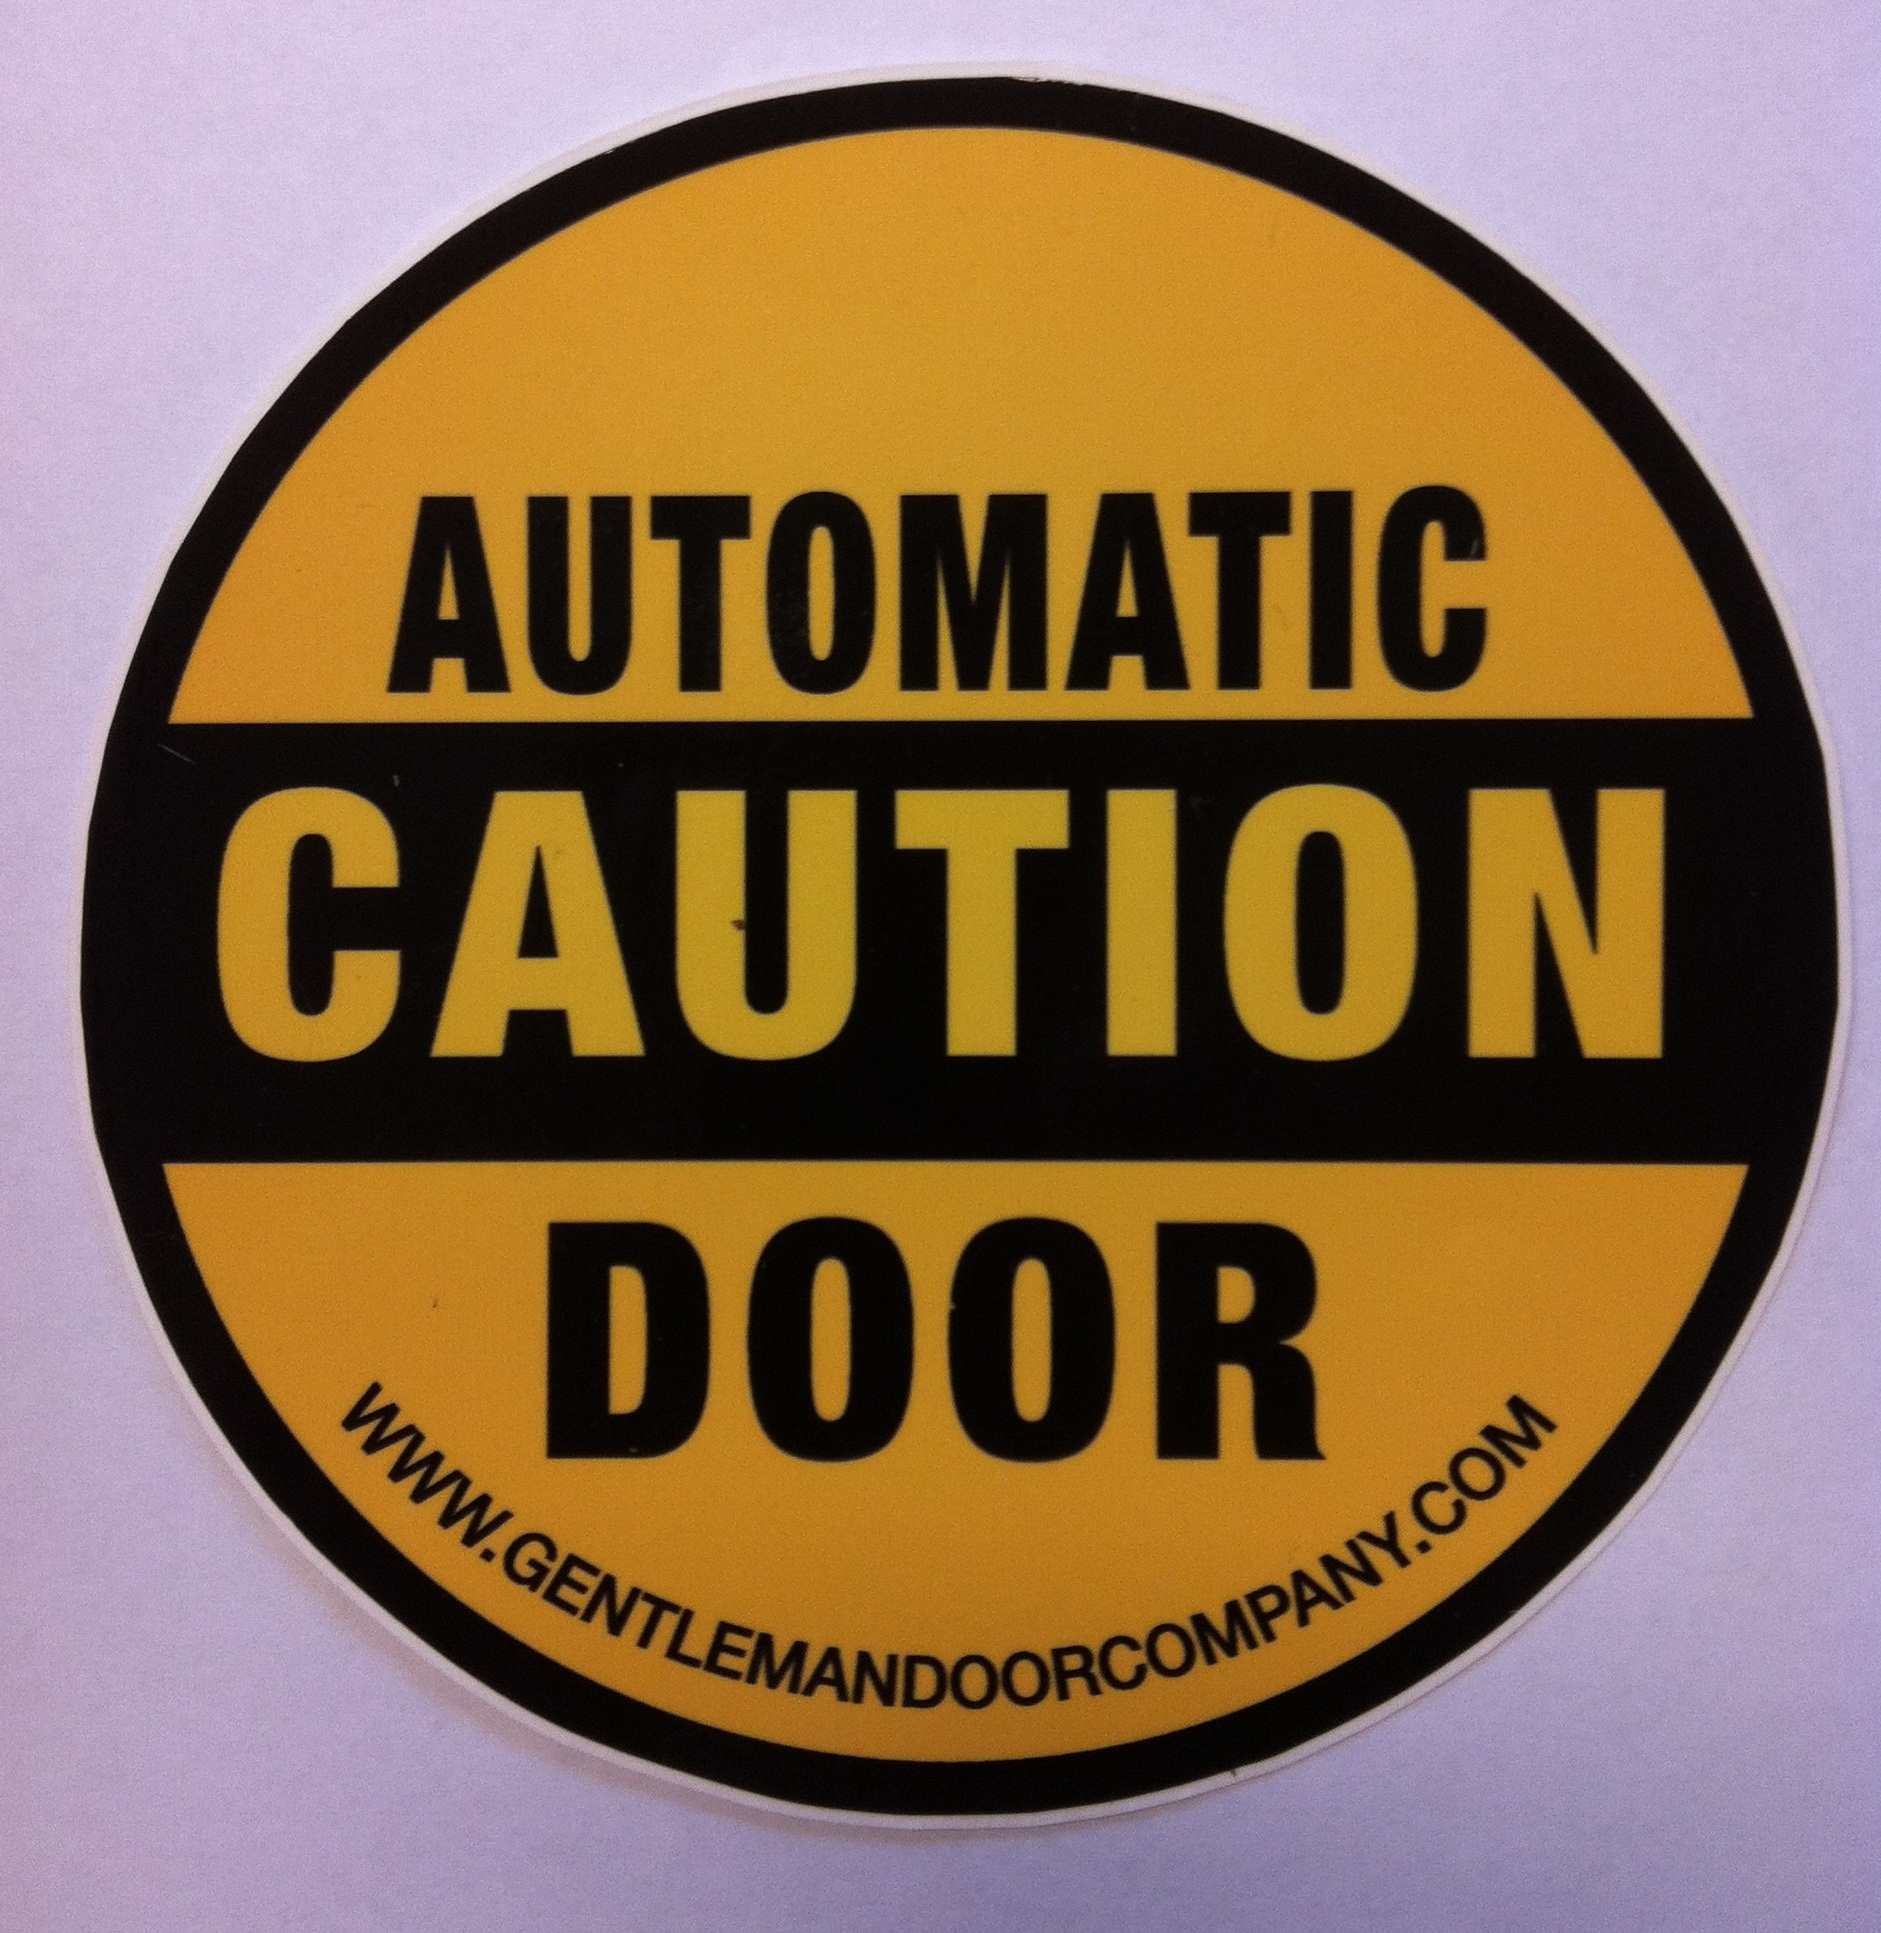 Caution automatic door decal